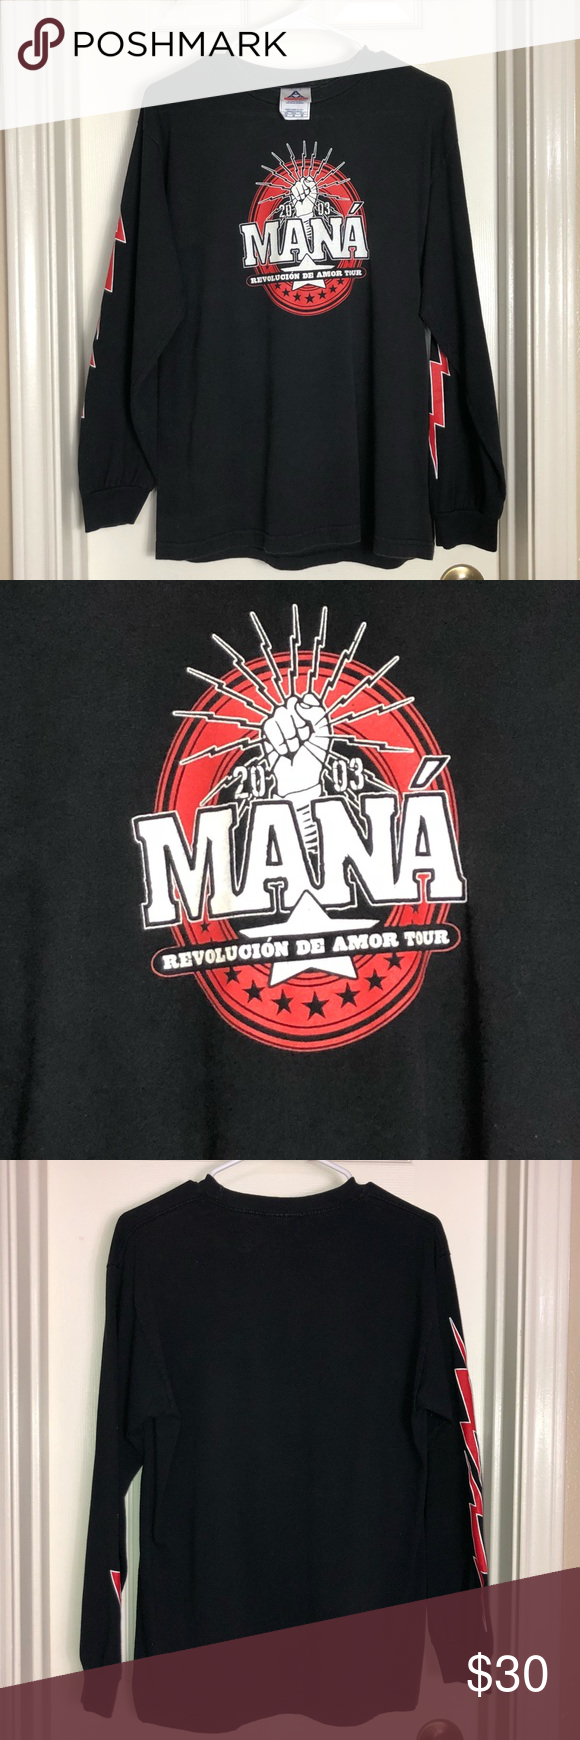 "Vintage 2003 Mana Tour Long Sleeve Shirt- Size Med Vintage 2003 Mana ""Revolucion de Amor"" Tour Long Sleeve Shirt- Size Medium   Pre-owned. Great condition - some fading- normal wear use.   100% Cotton   Chest- 19 1/2"" Length- 26"" Sleeve- 21 1/2"" Shoulder- 18""  *All measurements are approximate and taken with clothing lying flat   *Lighting May change the color slightly based on photography light, flash or viewing on different screens or monitors  *Smoke & Pet Free Environment   379-191 Shirts Tees - Long Sleeve"